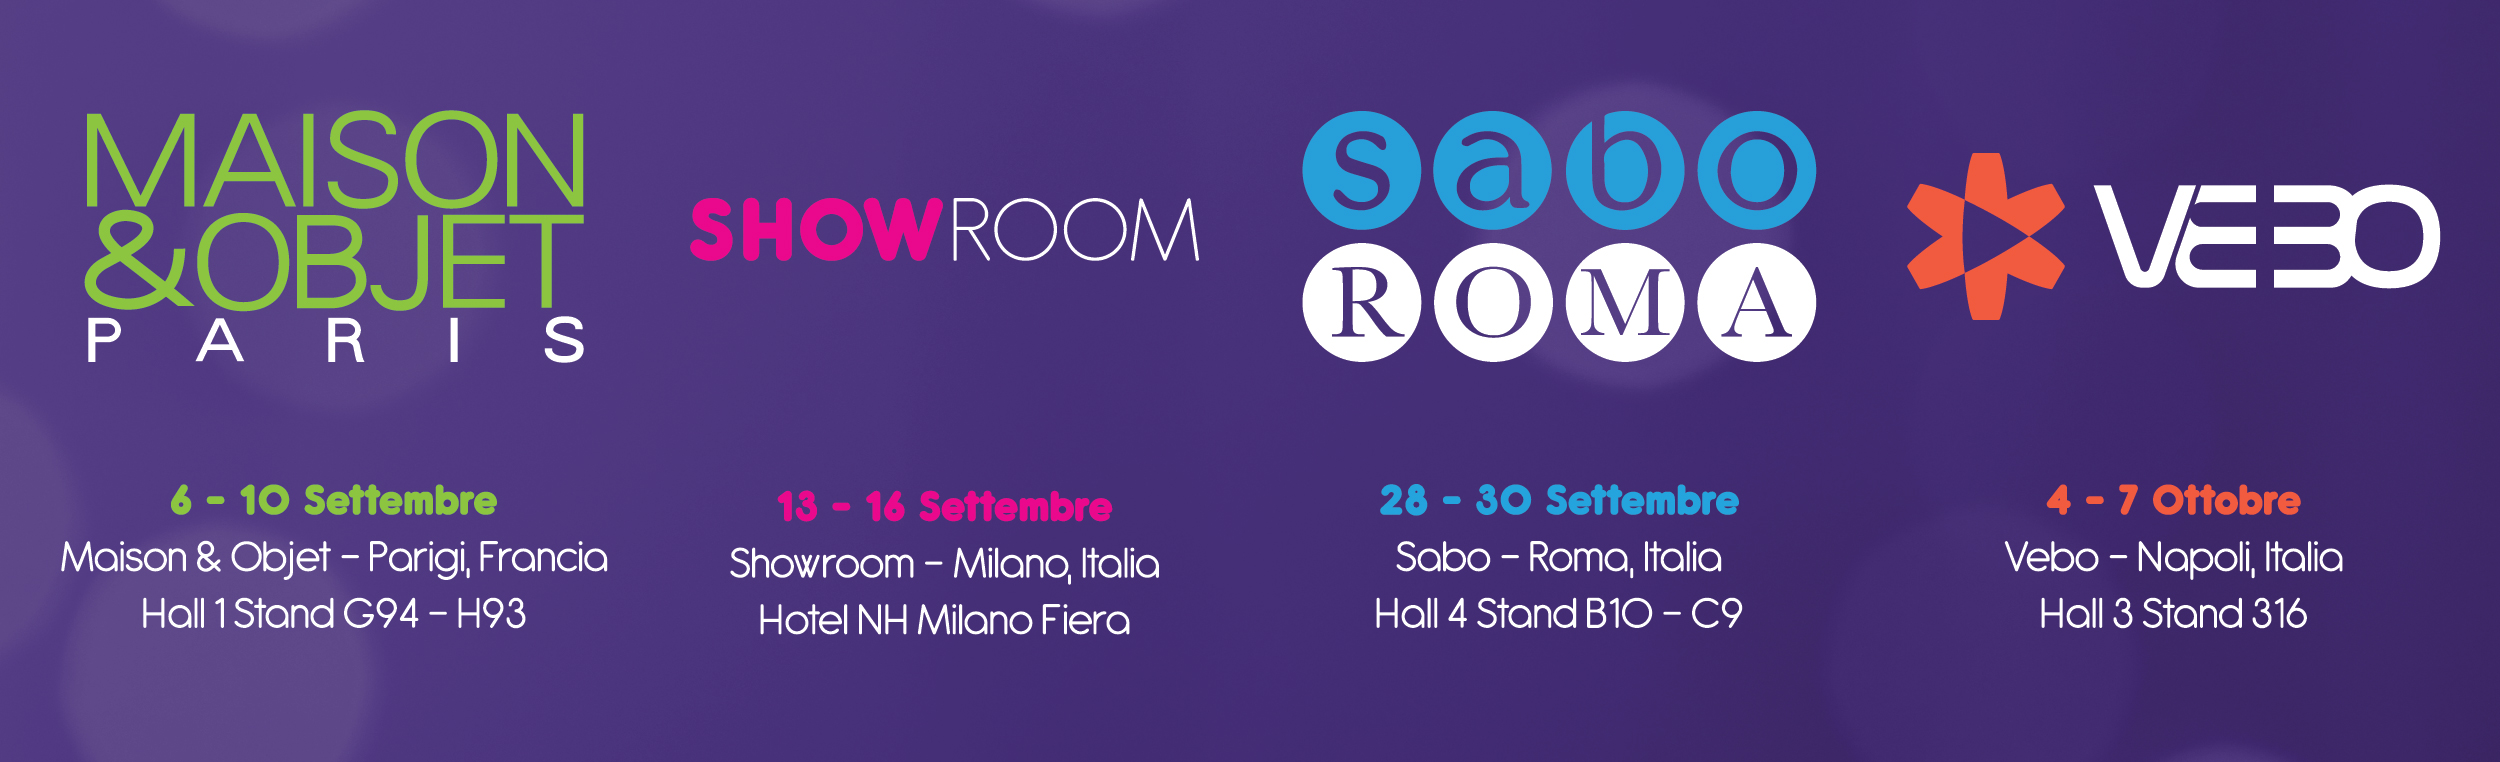 Fiere e Showroom